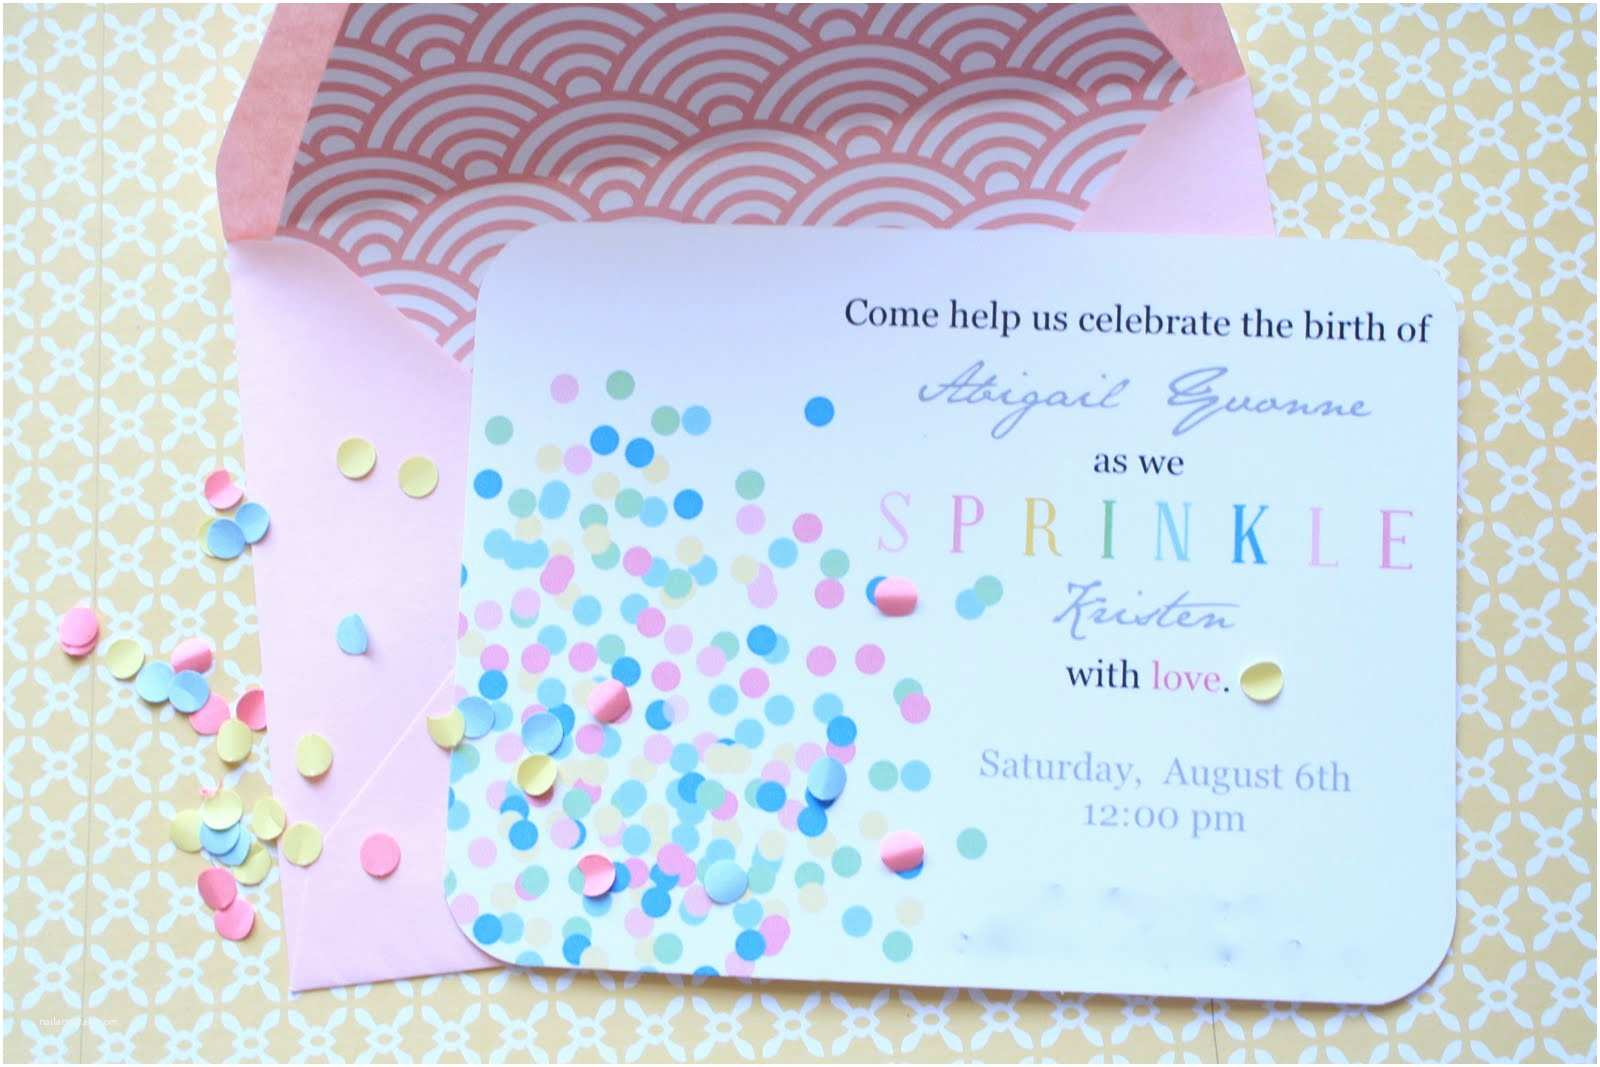 Baby Shower Invitations How to Make Baby Shower Invitations